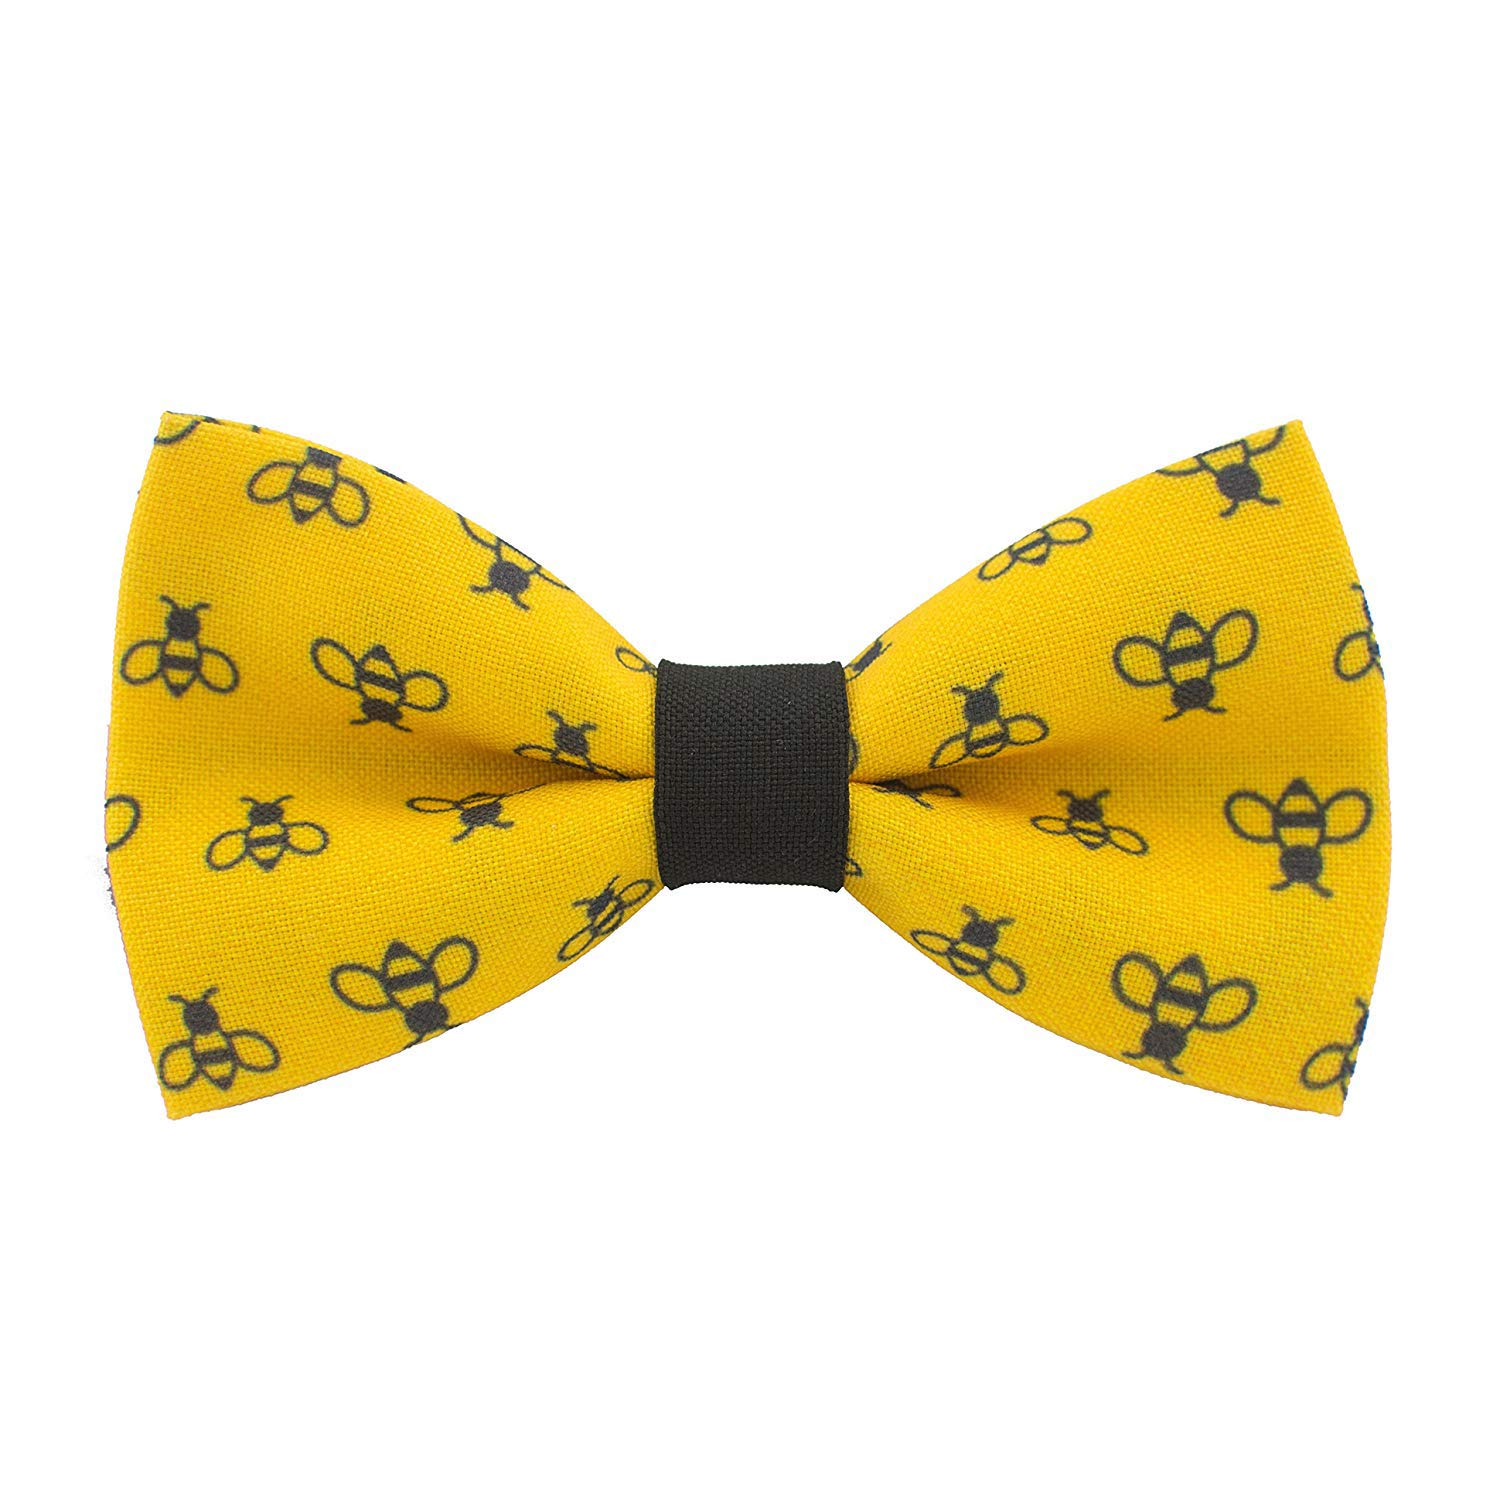 Bow Tie House Honey Bees bow tie pre-tied yellow-black color unisex pattern